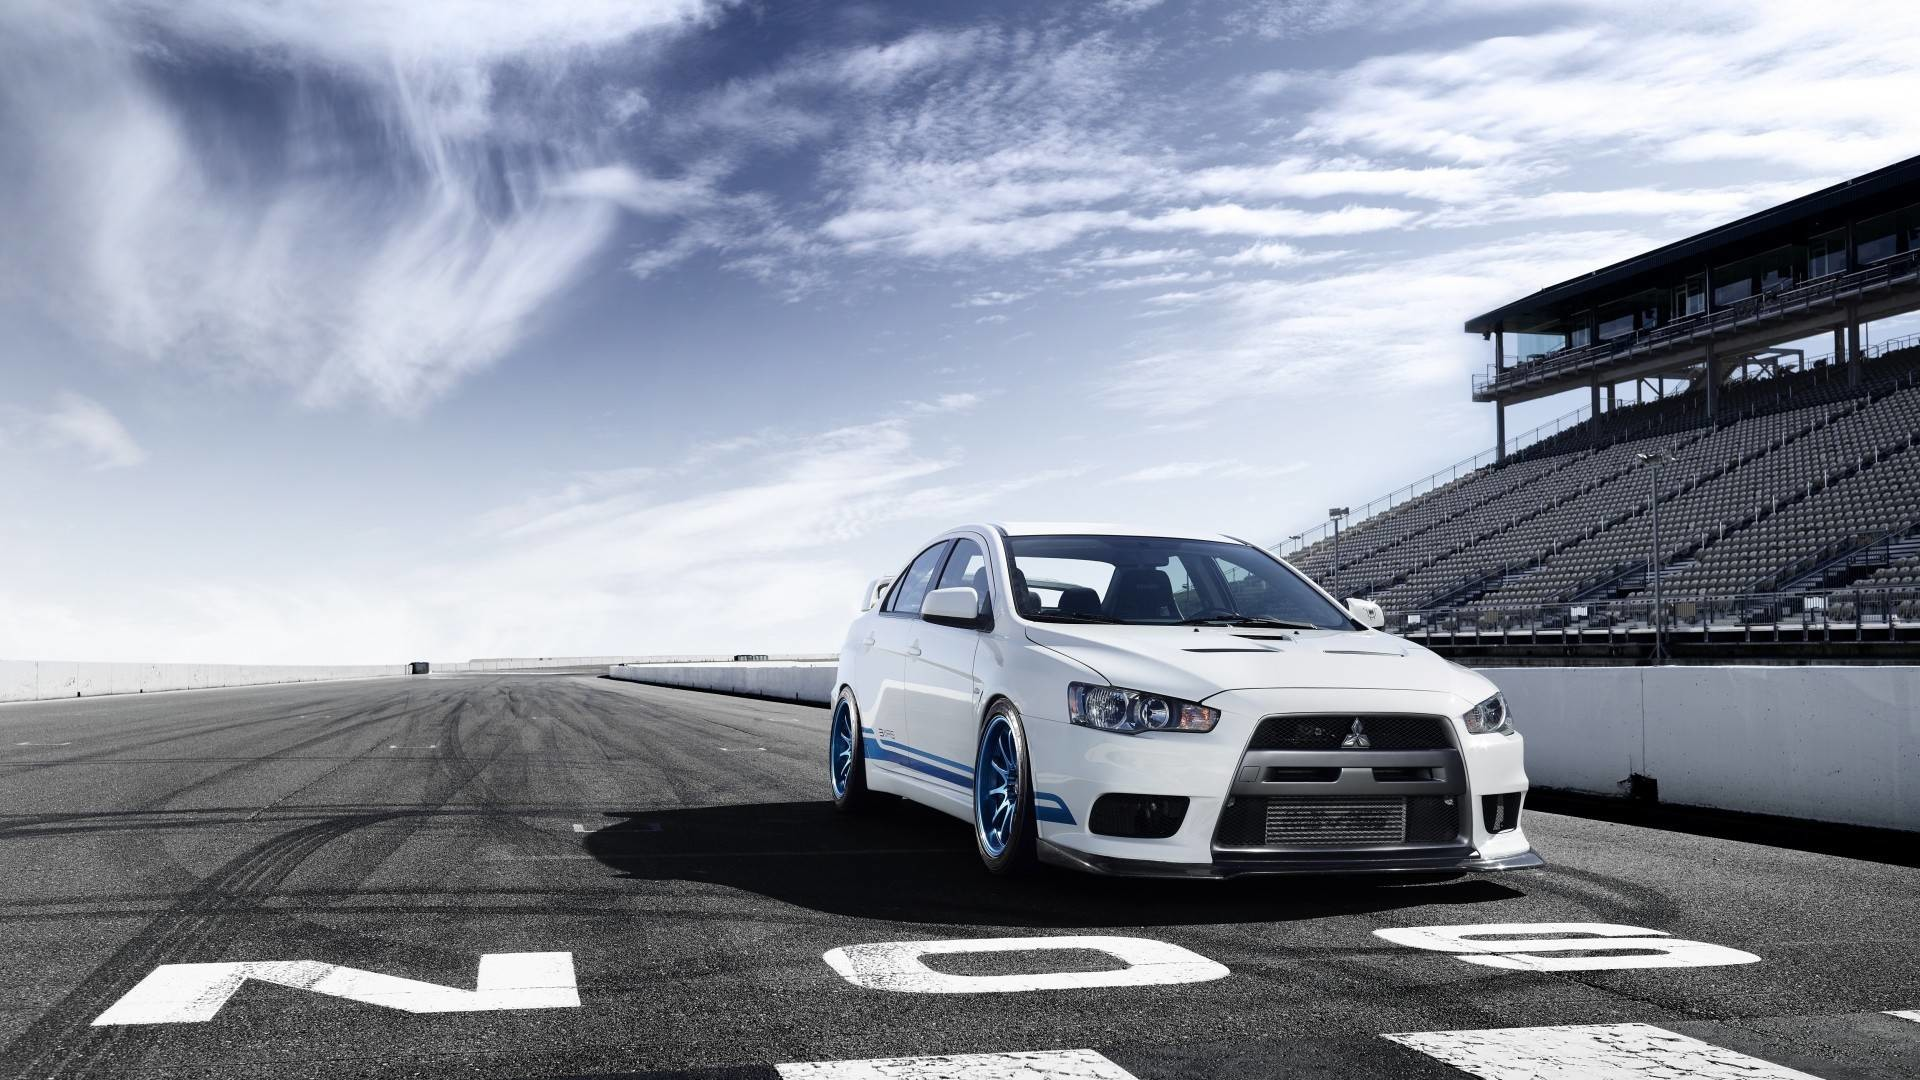 1920x1080 lancer evo x wallpaper